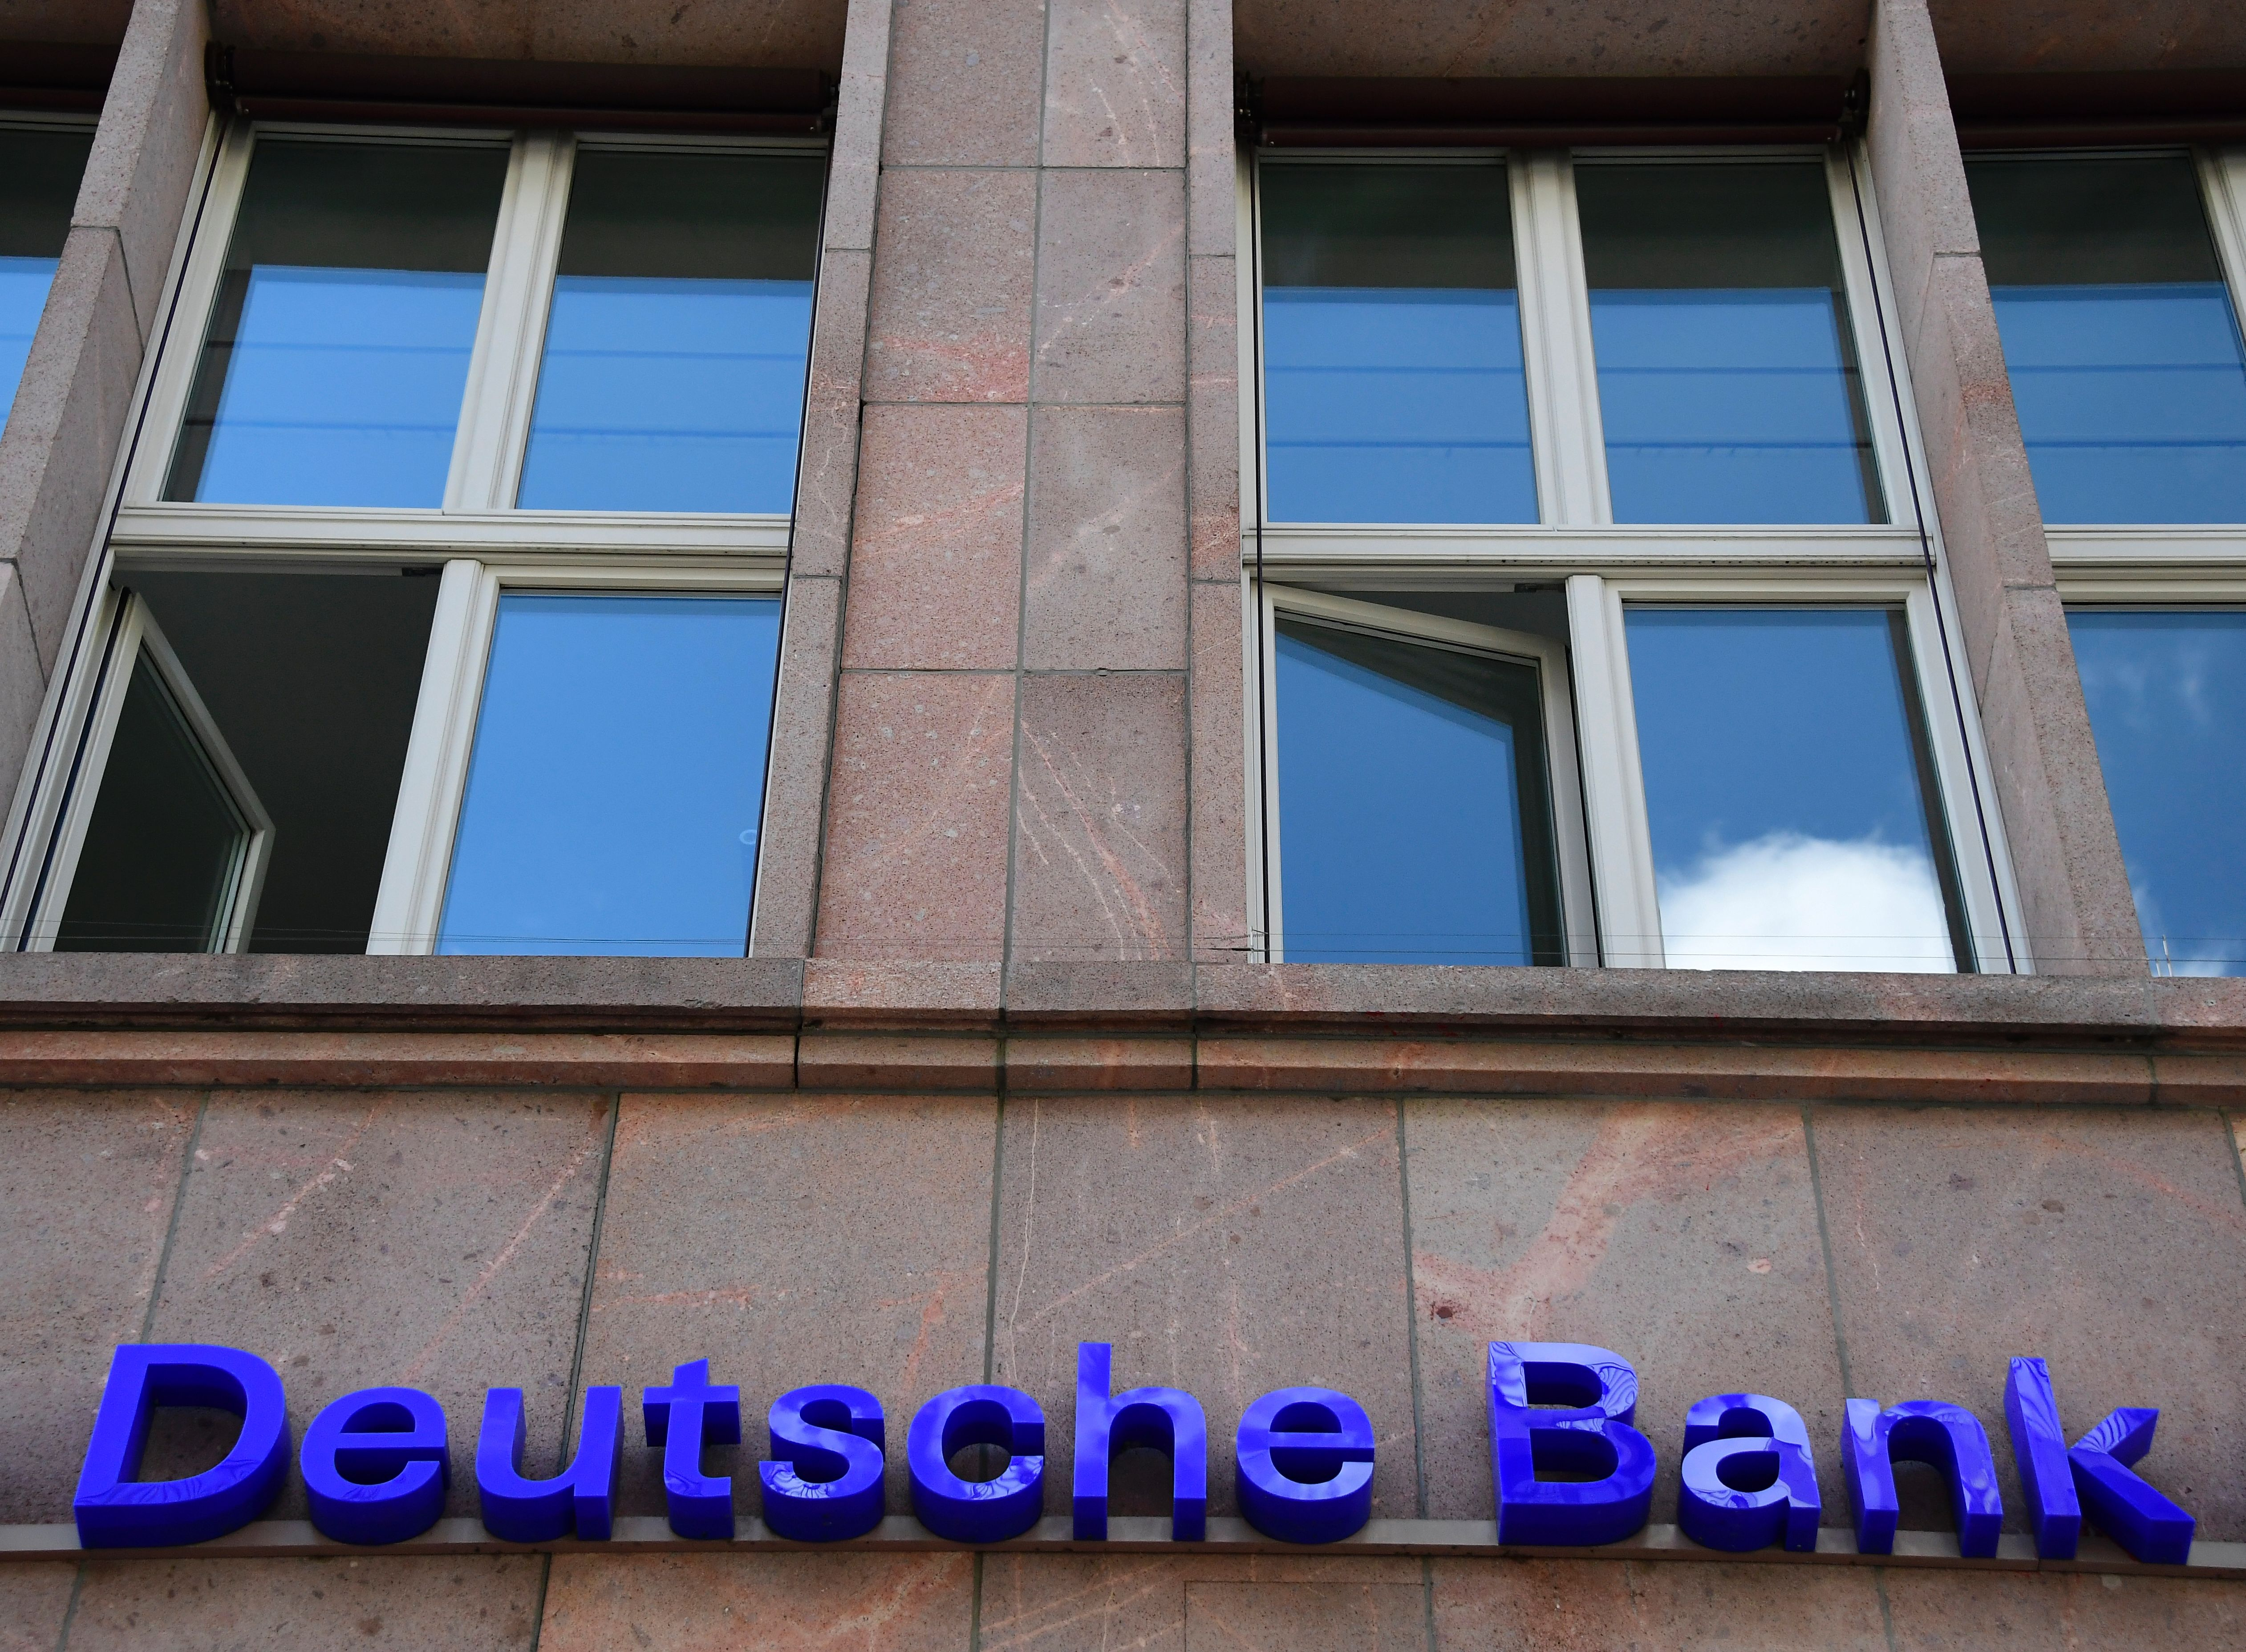 The logo of Germany's biggest lender Deutsche Bank is seen on a branch of the bank in Berlin's Mitte district on September 30, 2016.                 Shares in Deutsche Bank plummeted on the Frankfurt stock market, dragging other European banks and global markets down with it, after reports some customers were pulling money out.